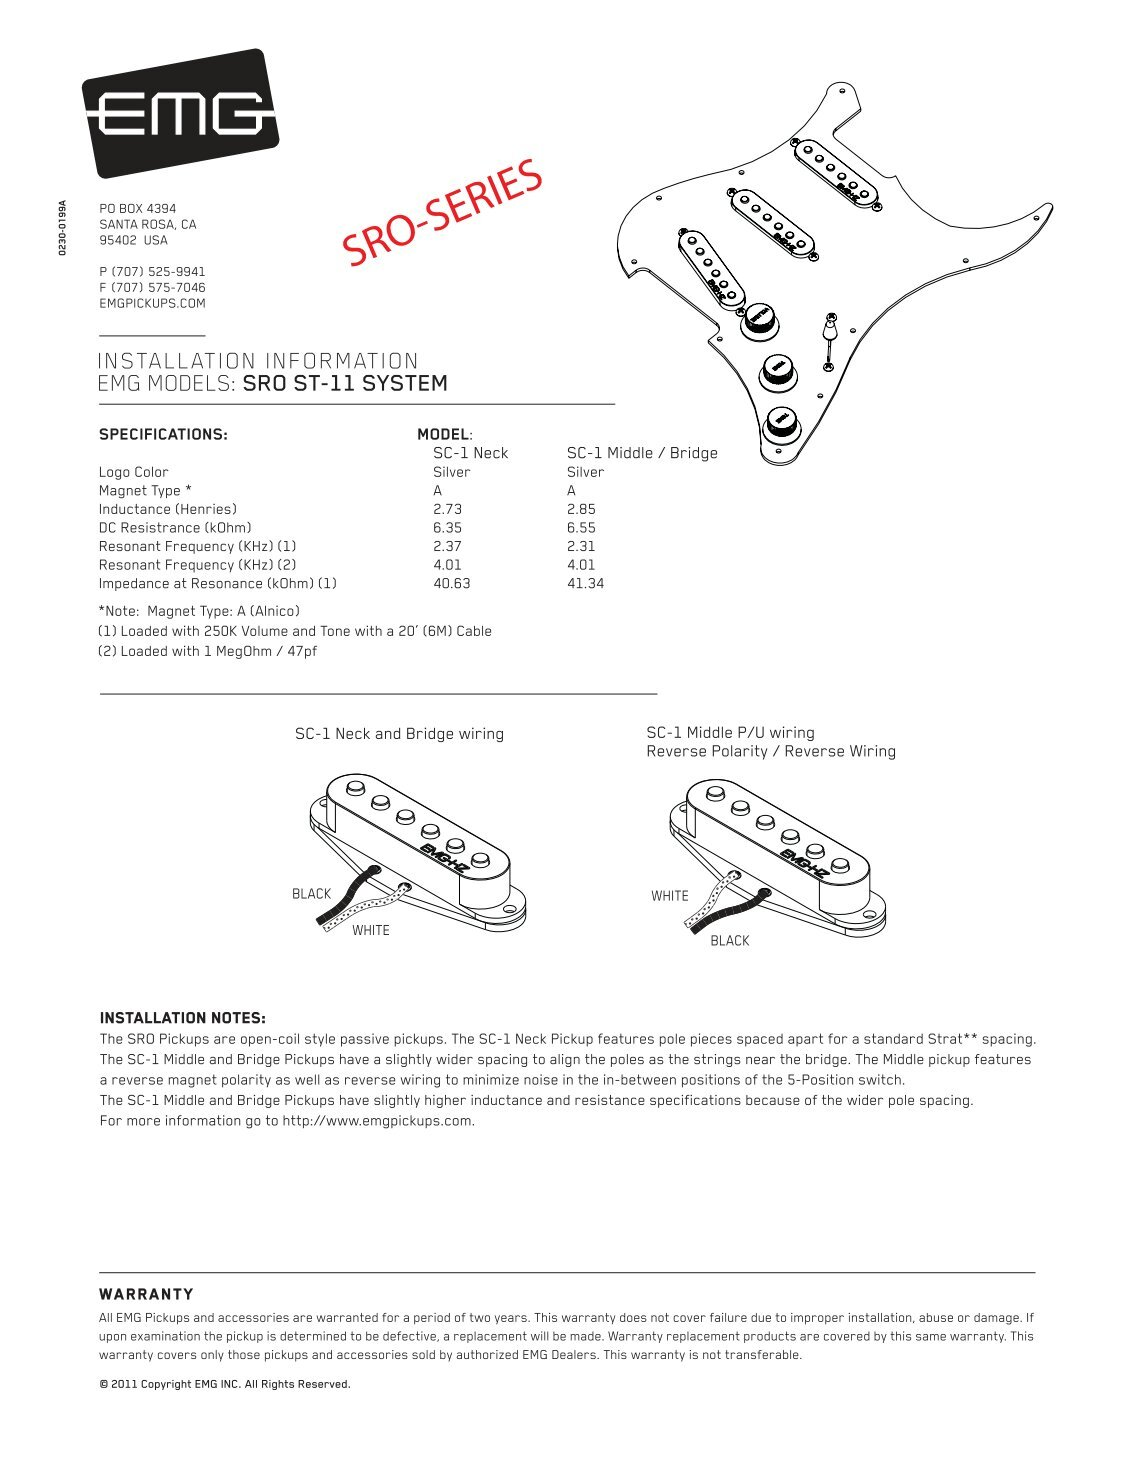 jackson soloist wiring harness free download wiring diagram bc rich warlock guitar wiring diagram super jackson [ 1137 x 1471 Pixel ]